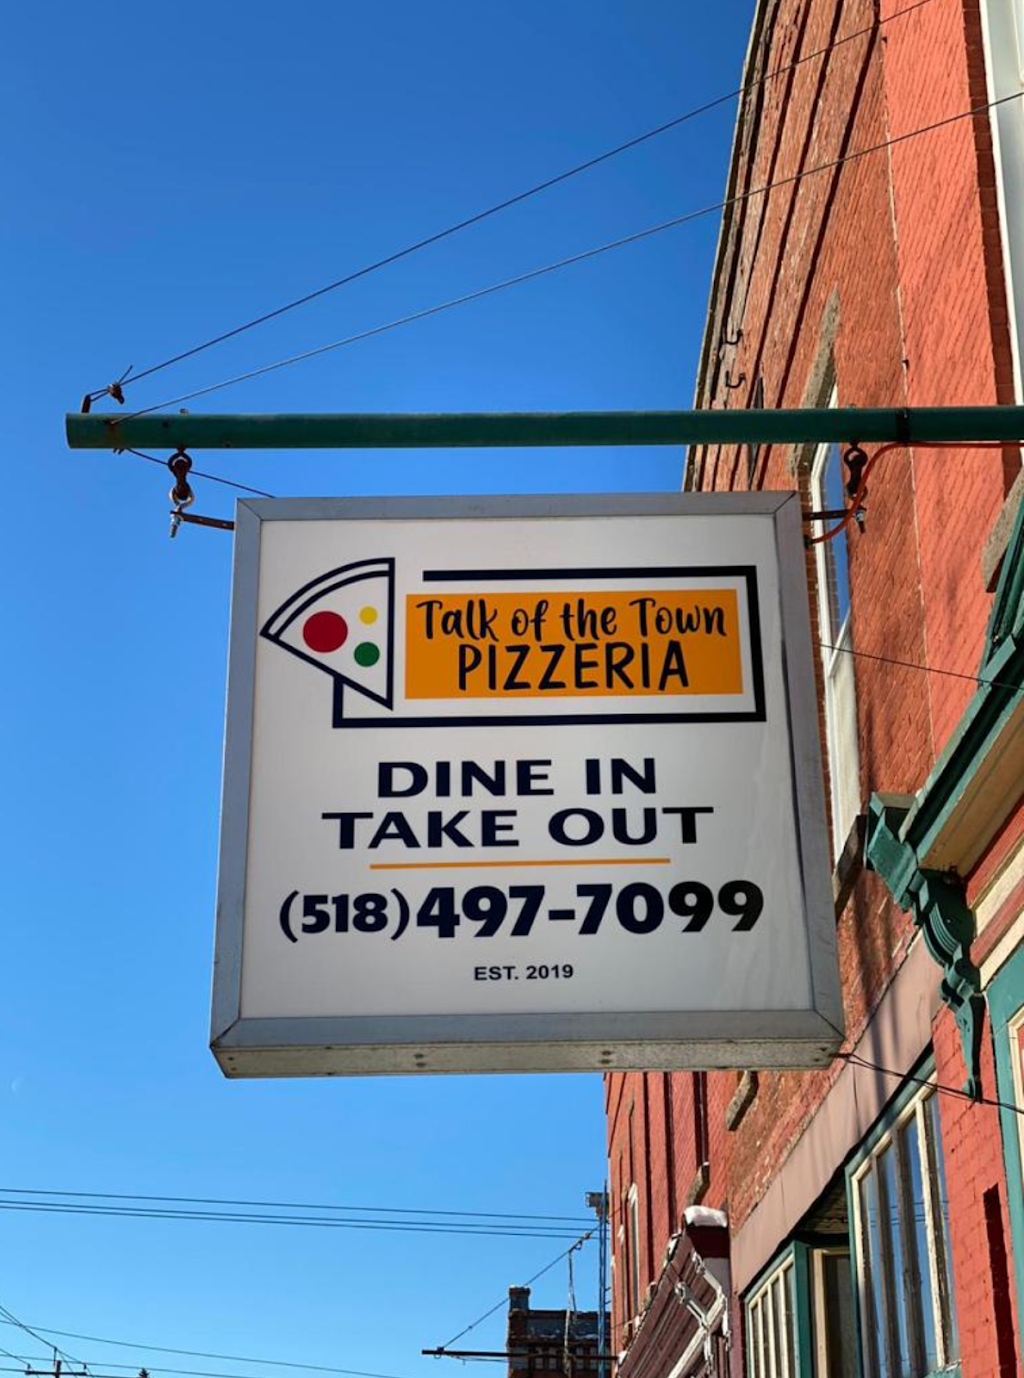 Talk of the Town Pizzeria | restaurant | 171 E Main St, Chateaugay, NY 12920, United States | 5184977099 OR +1 518-497-7099